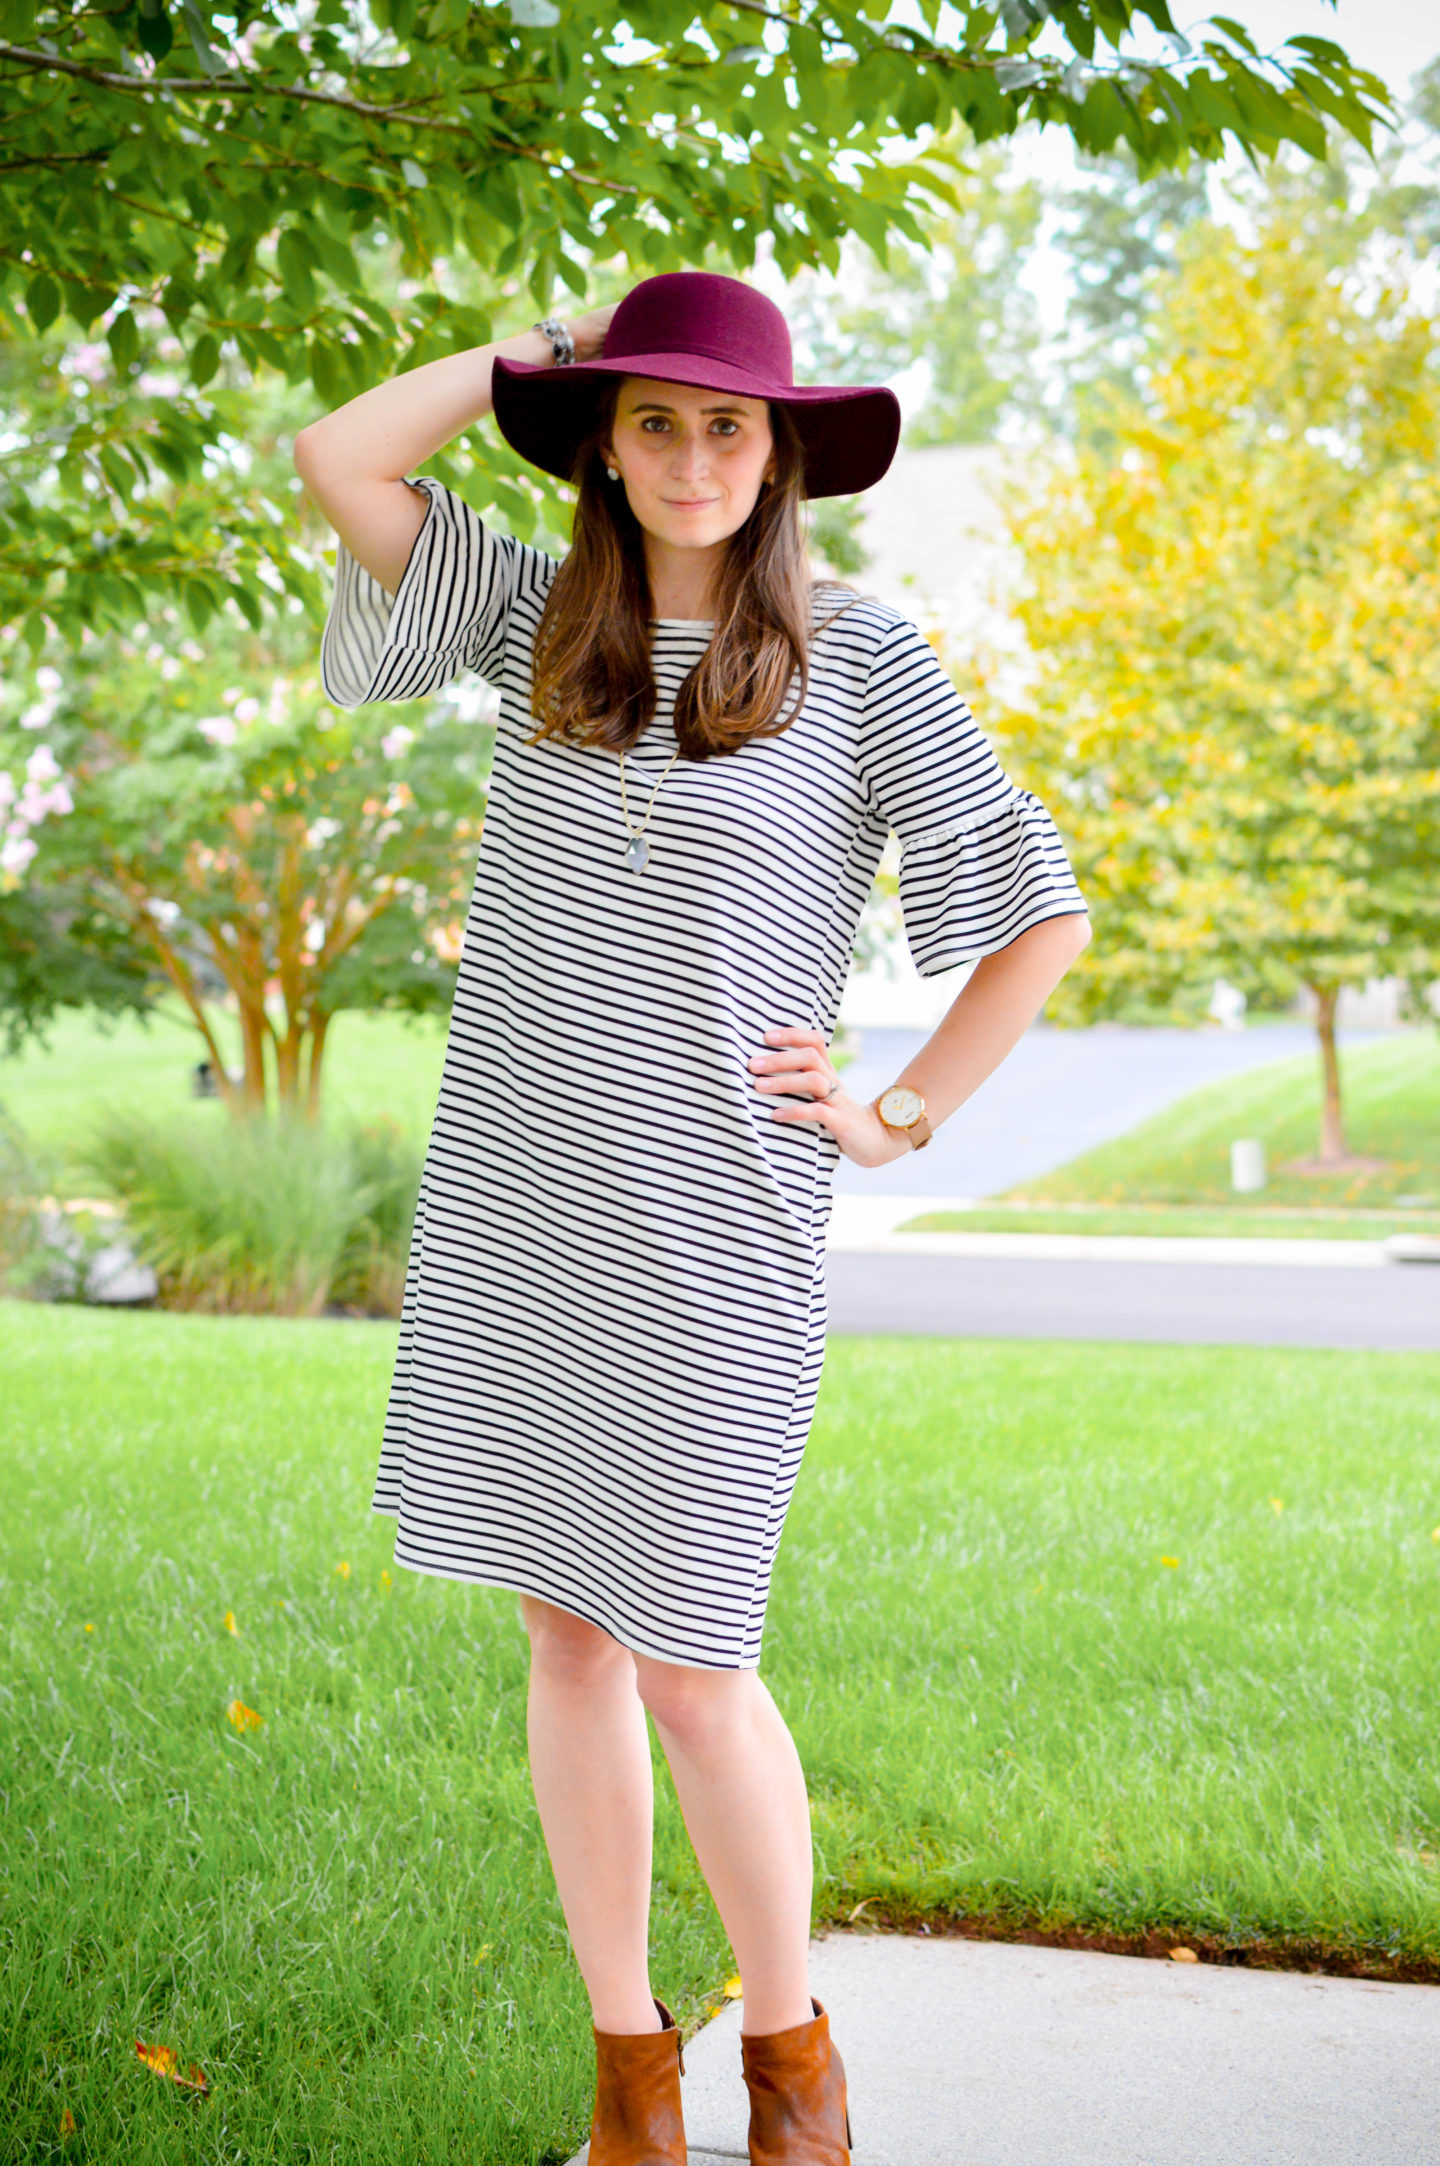 The Poppy & Dot Dress With the Stripes | Breezing Through